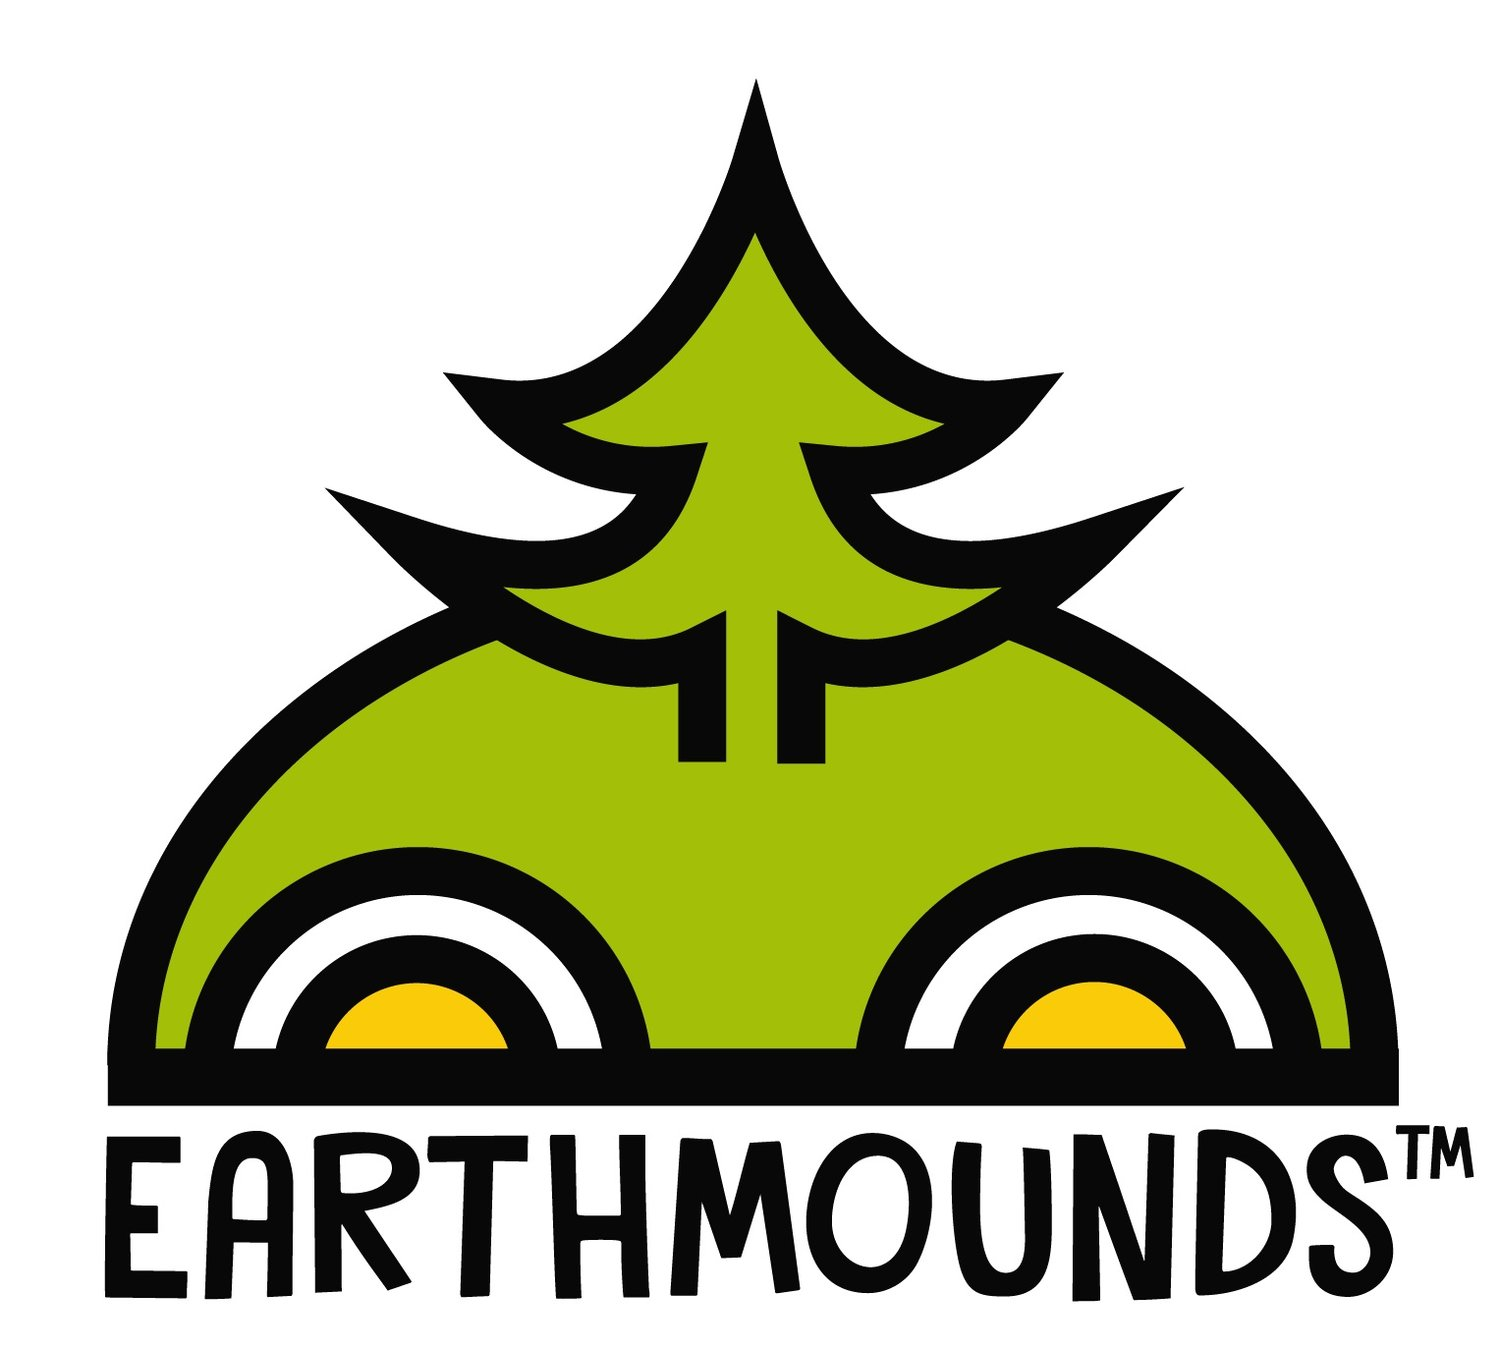 Earthmounds